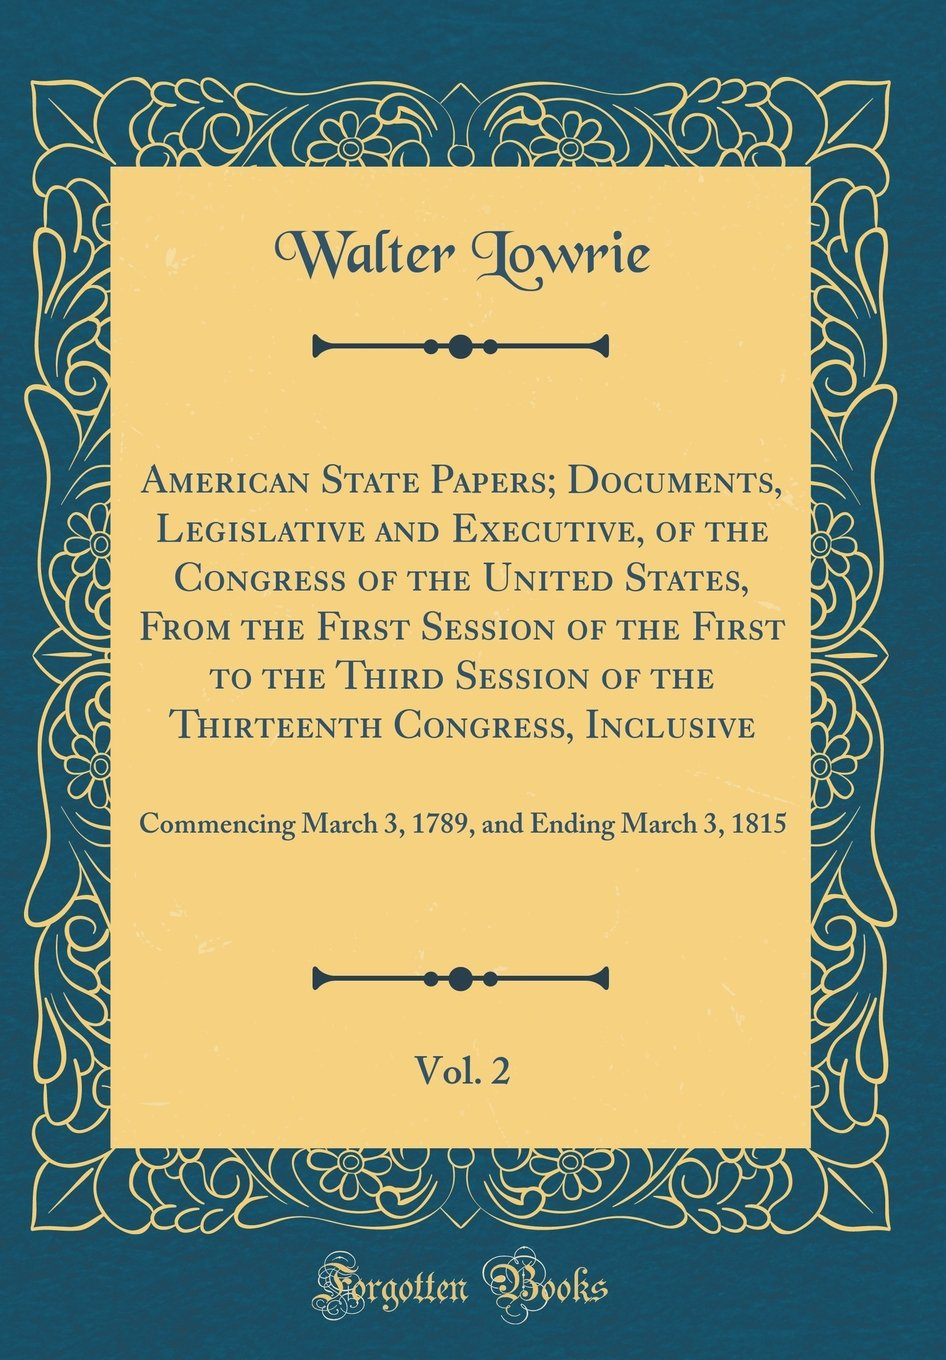 American State Papers; Documents, Legislative and Executive, of the Congress of the United States, from the First Session of the First to the Third ... March 3, 1789, and Ending March 3, 1815 PDF